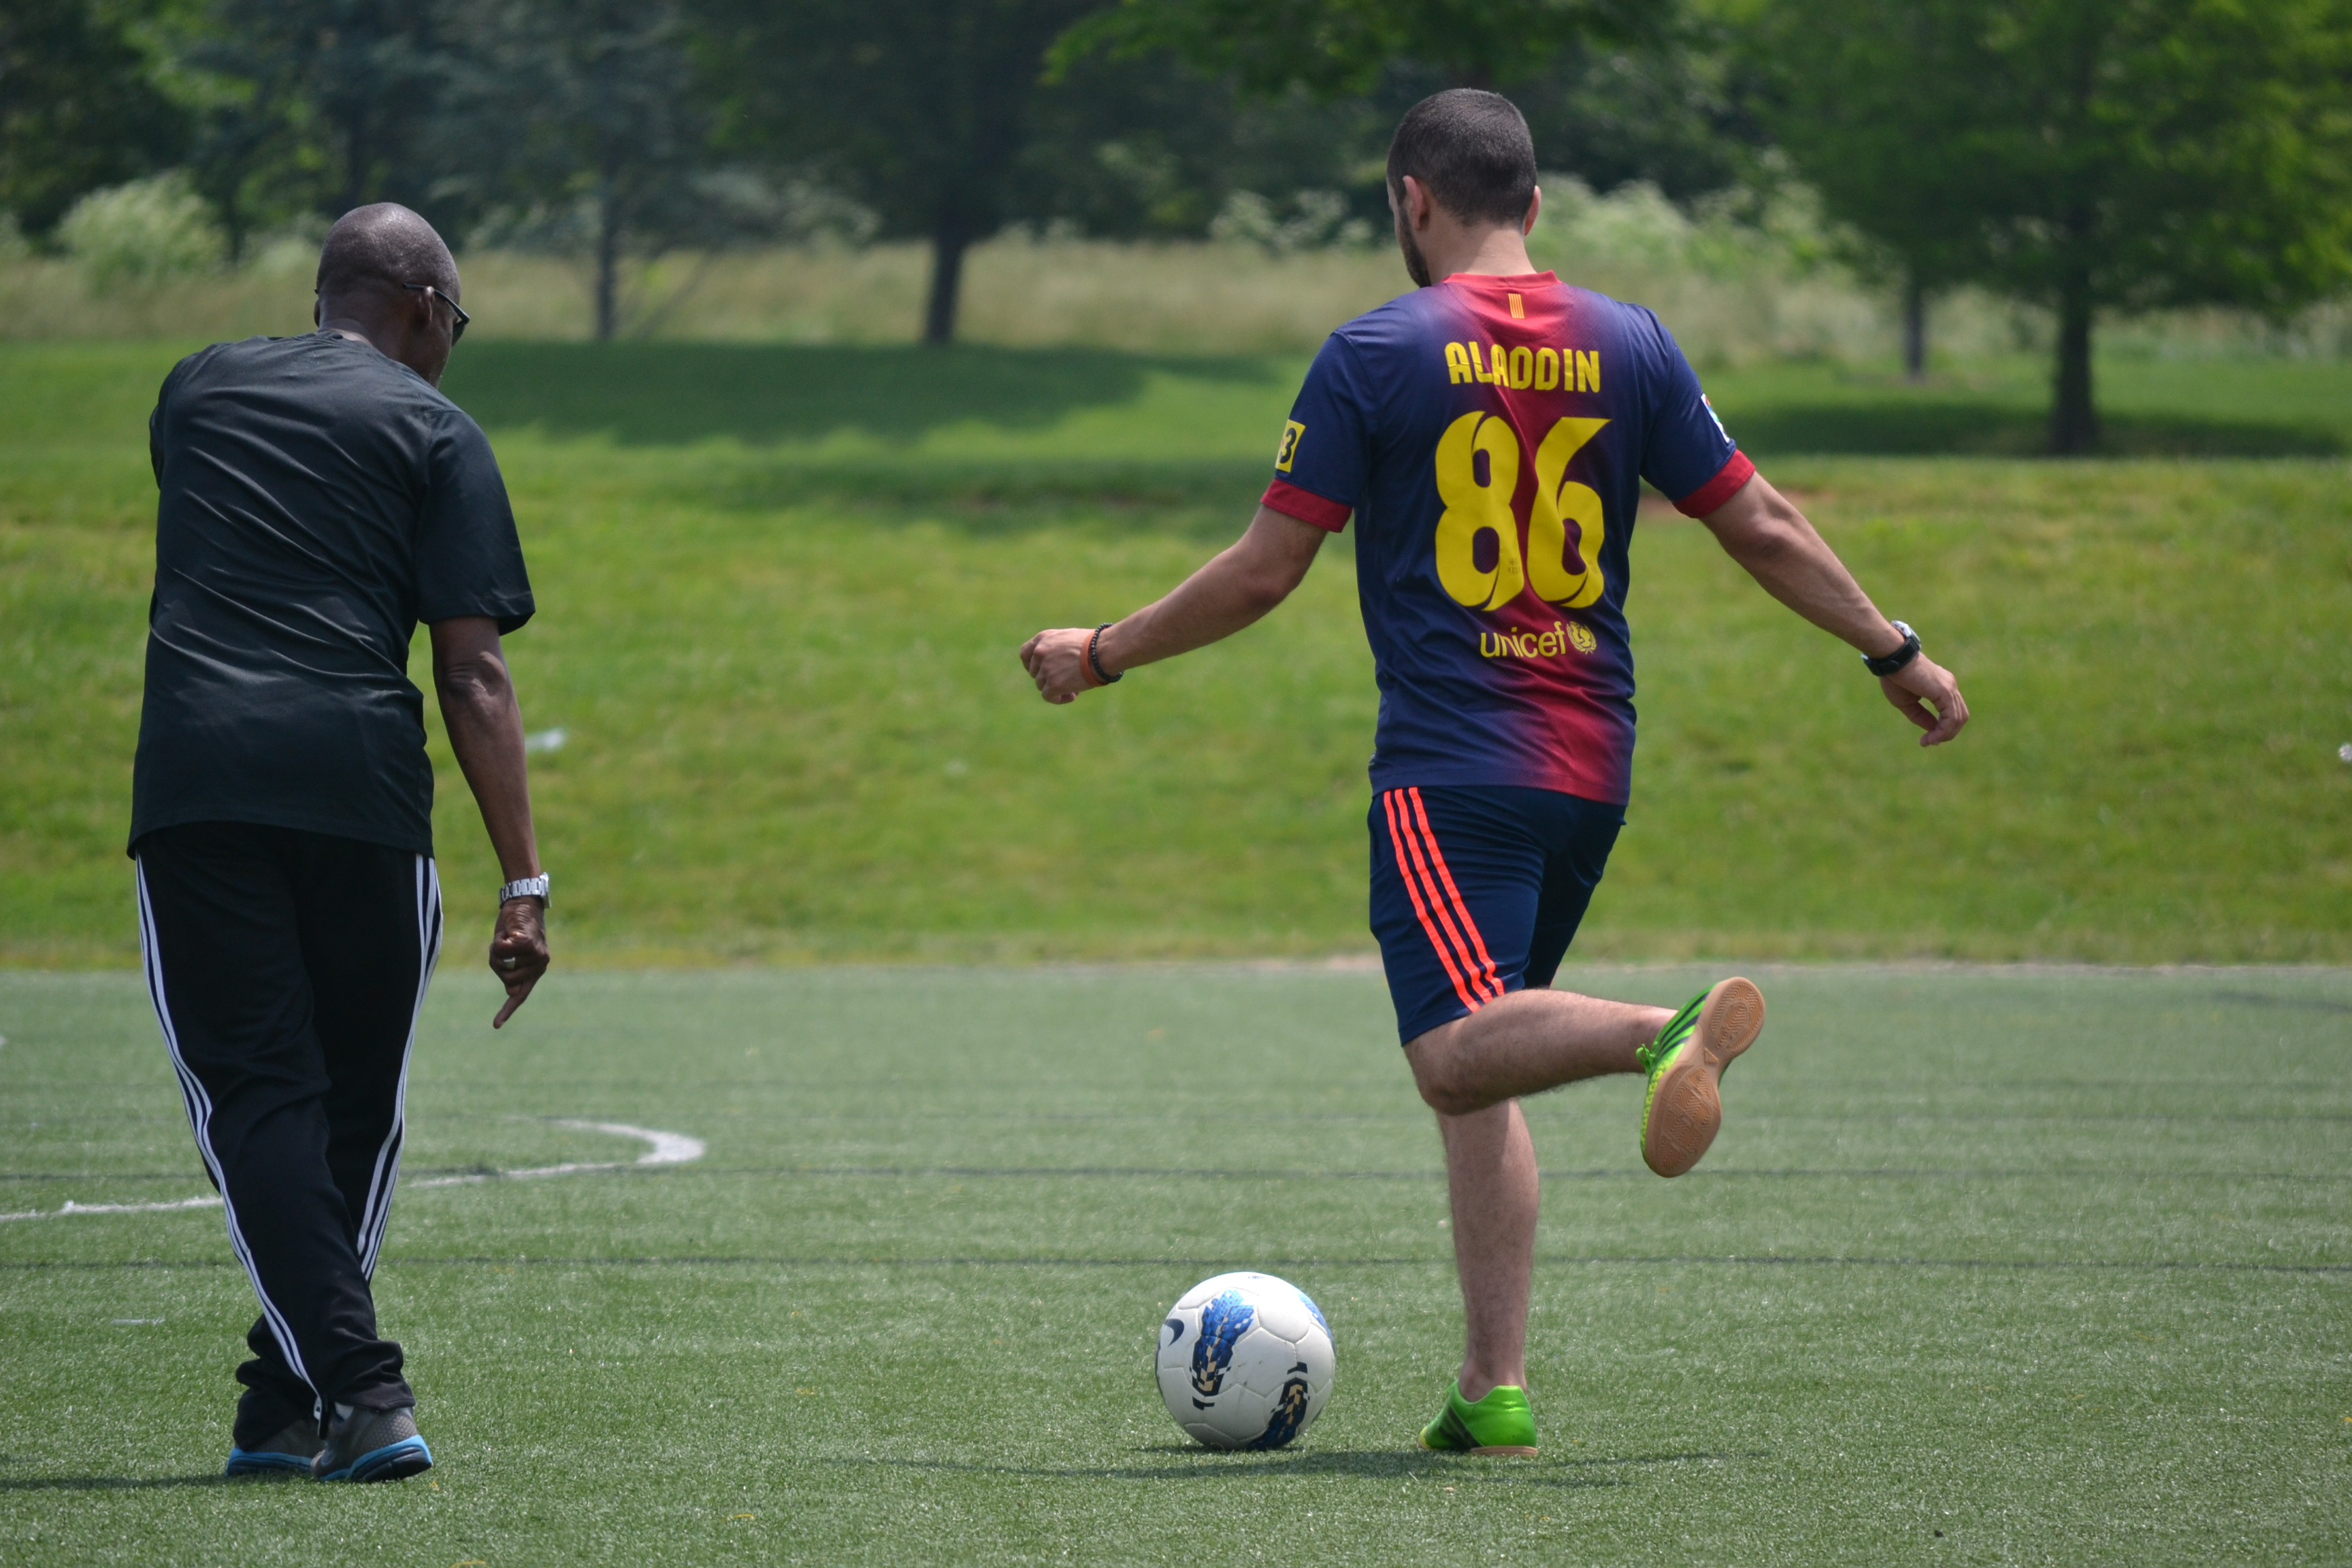 U.S coach/trainer works with a NEA coach on a passing drill.